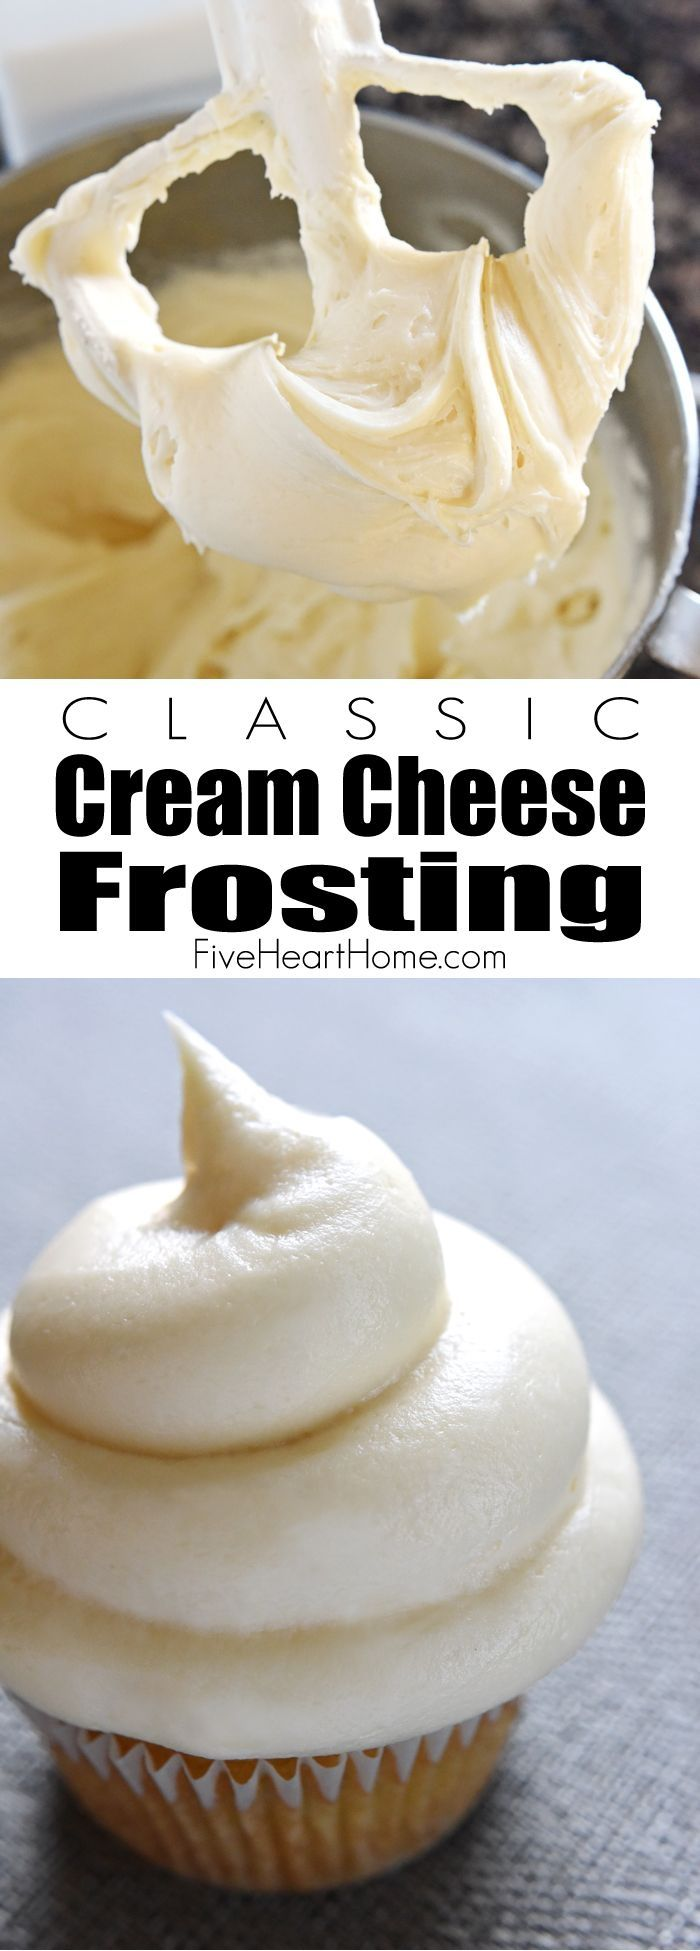 Classic Cream Cheese Frosting Cheese Classic Cream Frosting